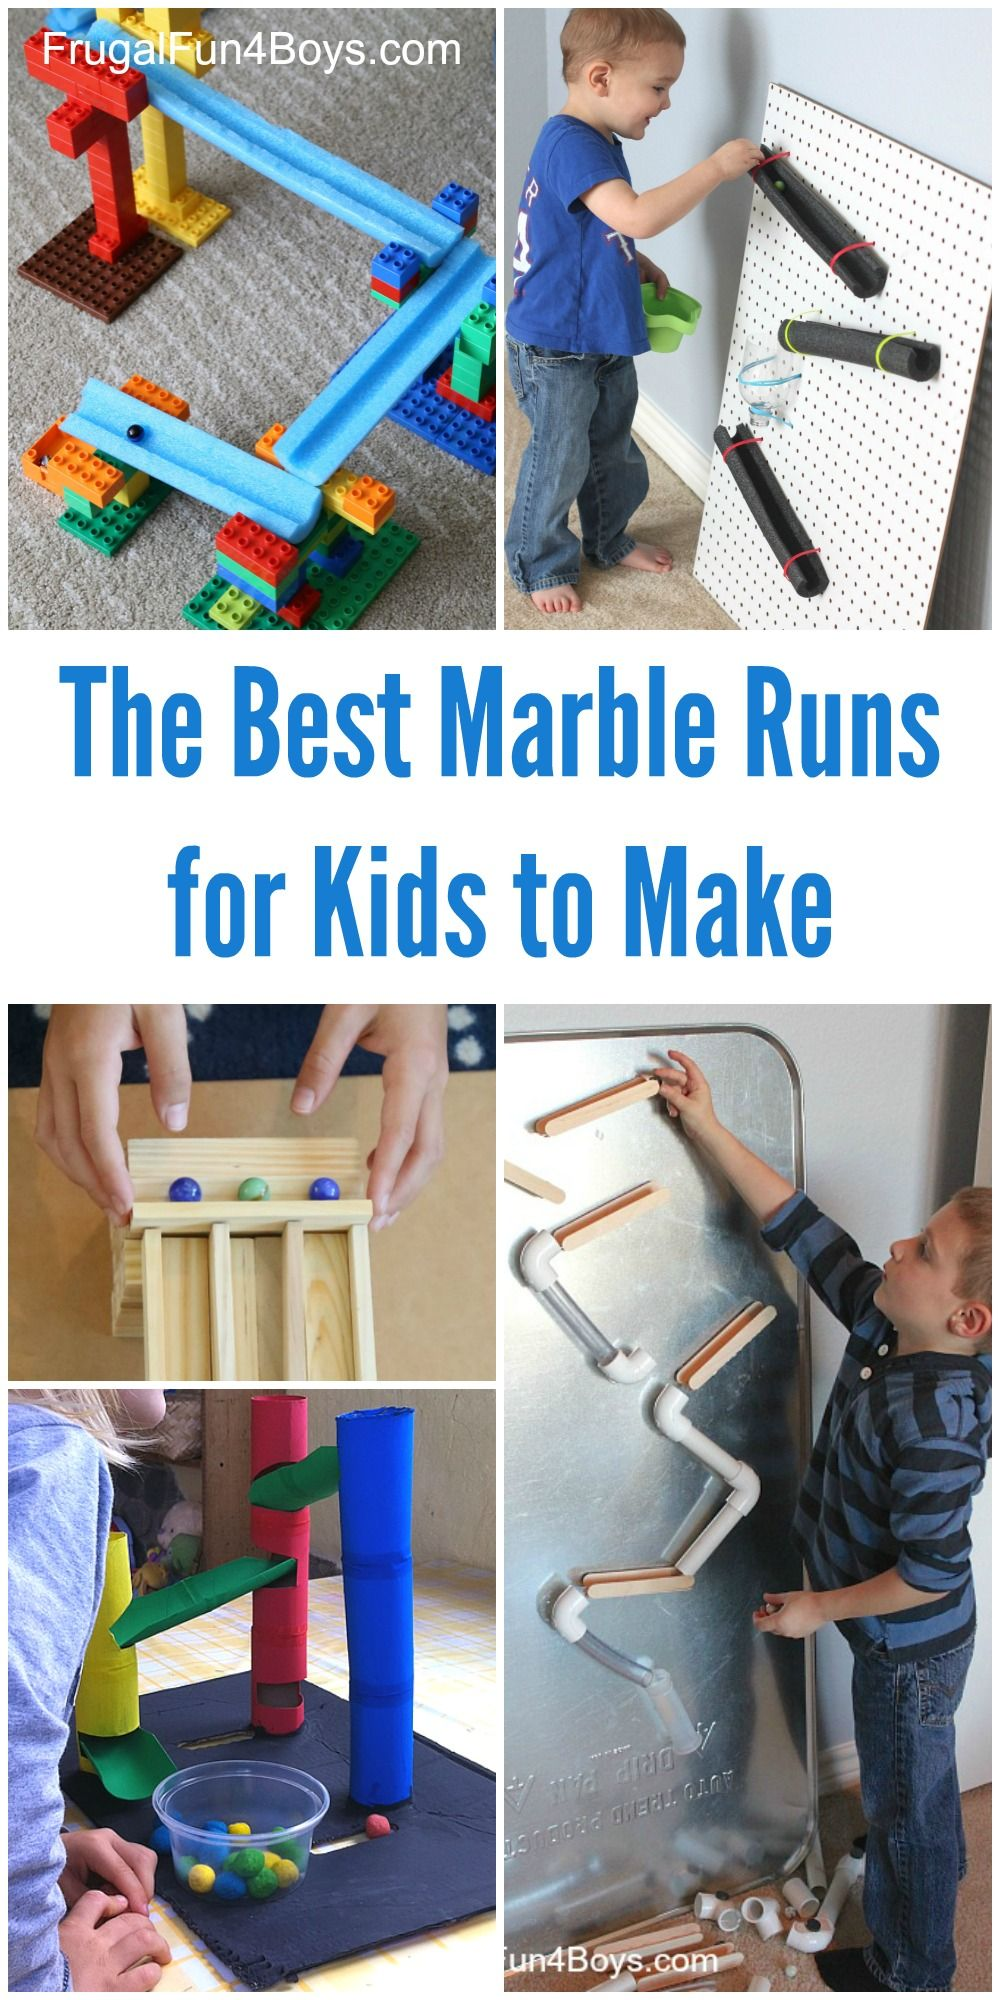 Fun Stem Challenges For Kids The Best Marble Runs To